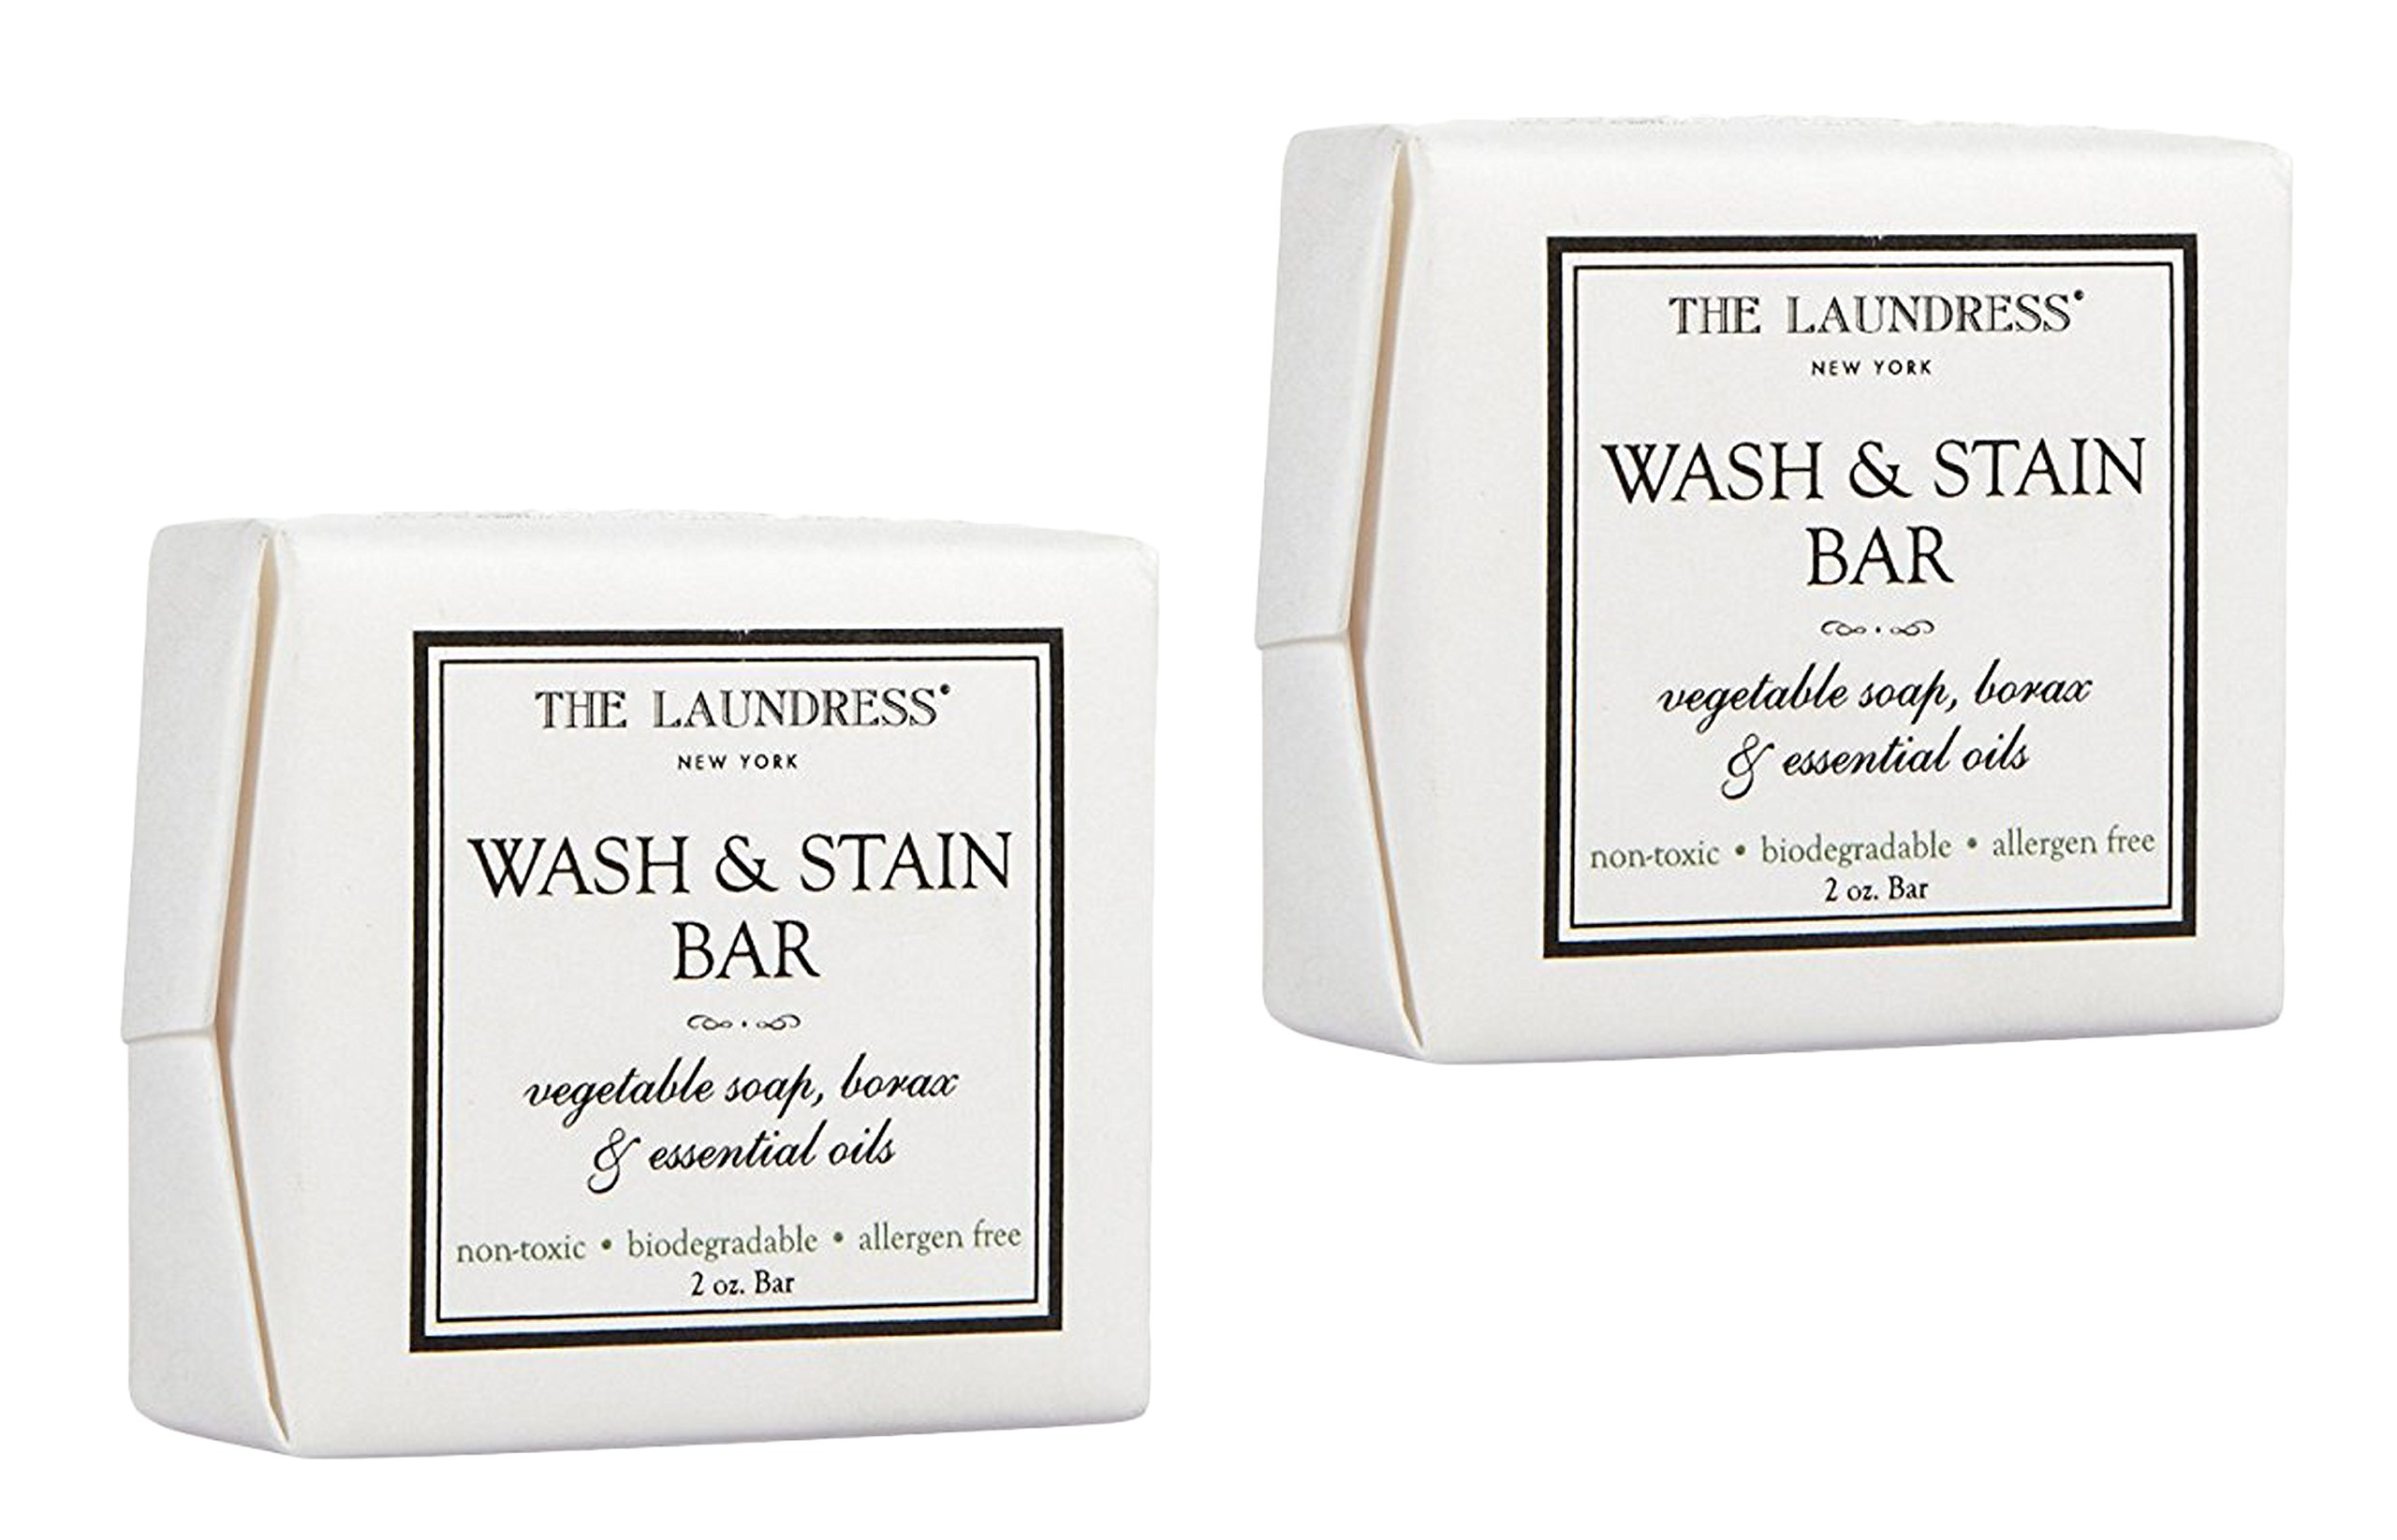 Set of 2 The Laundress 2 oz. Classic Wash and Stain Bar bundled by Maven Gifts